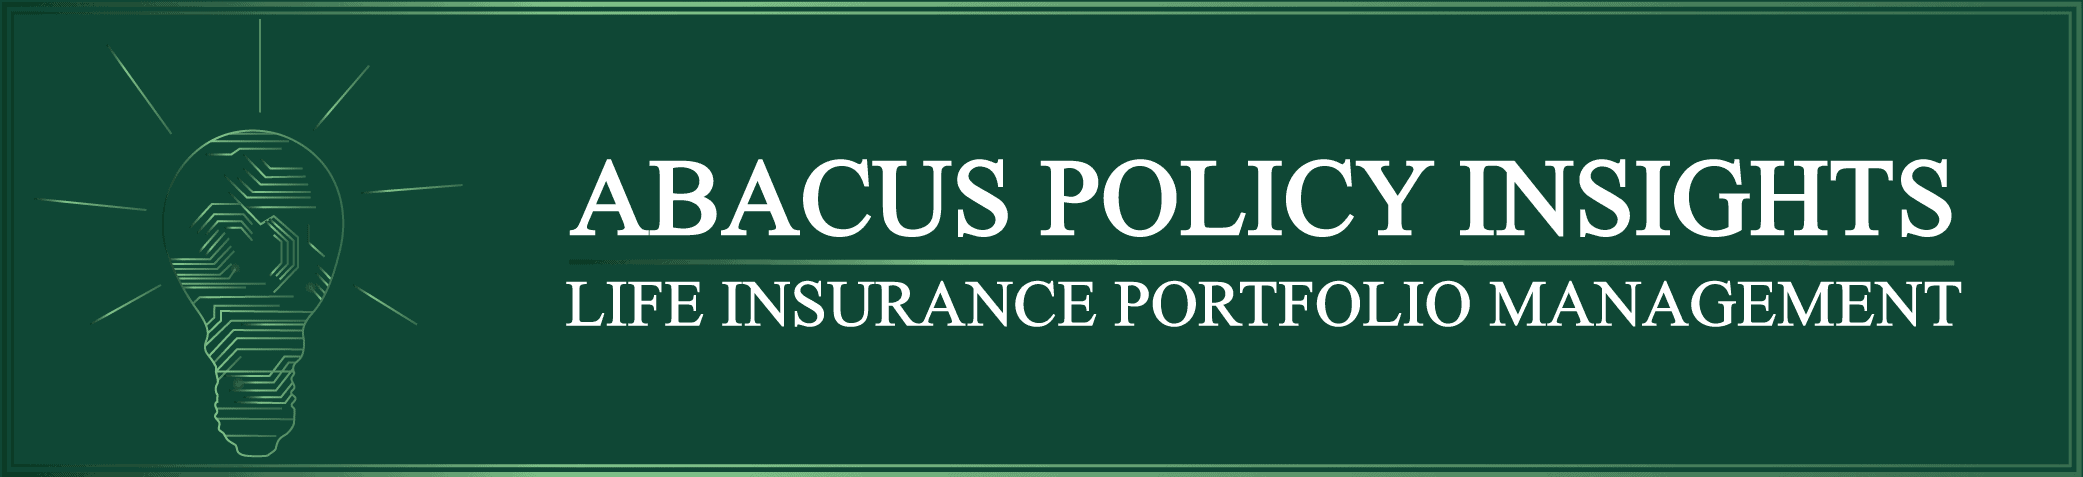 The abacus policy insights book pricing tool logo